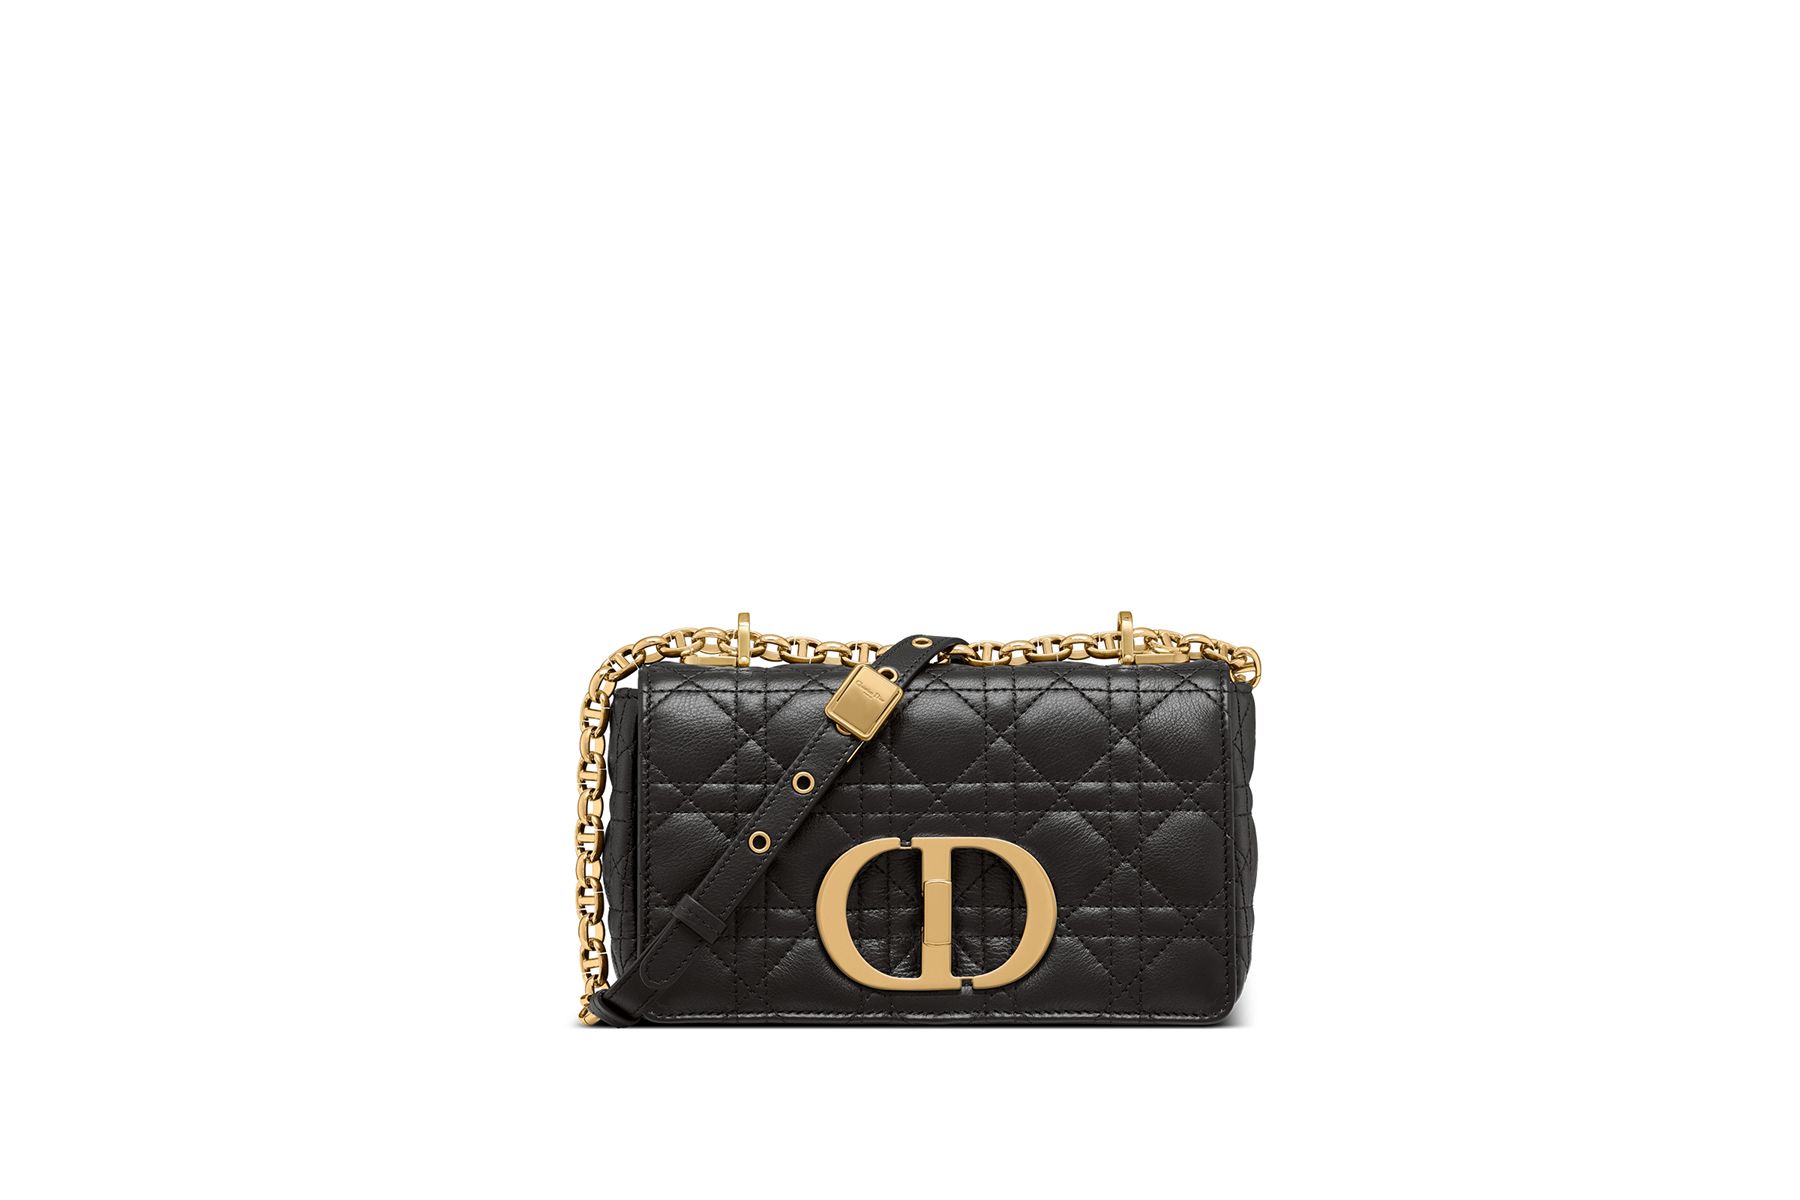 Dior Releases New Caro Bag With Handcraft Narrative